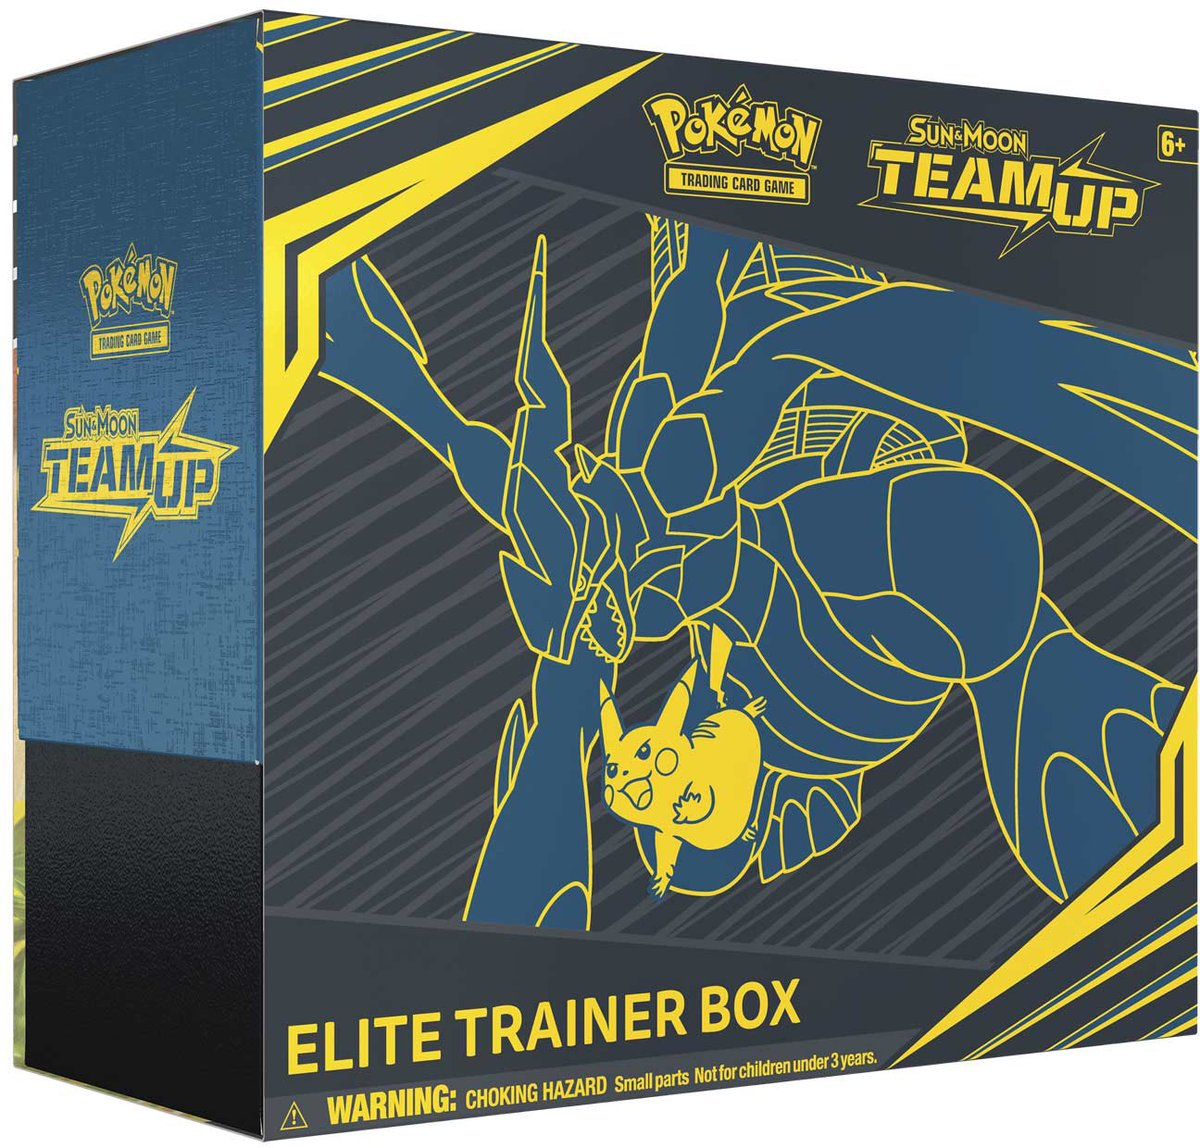 Sun & Moon Team Up Elite Trainer Box